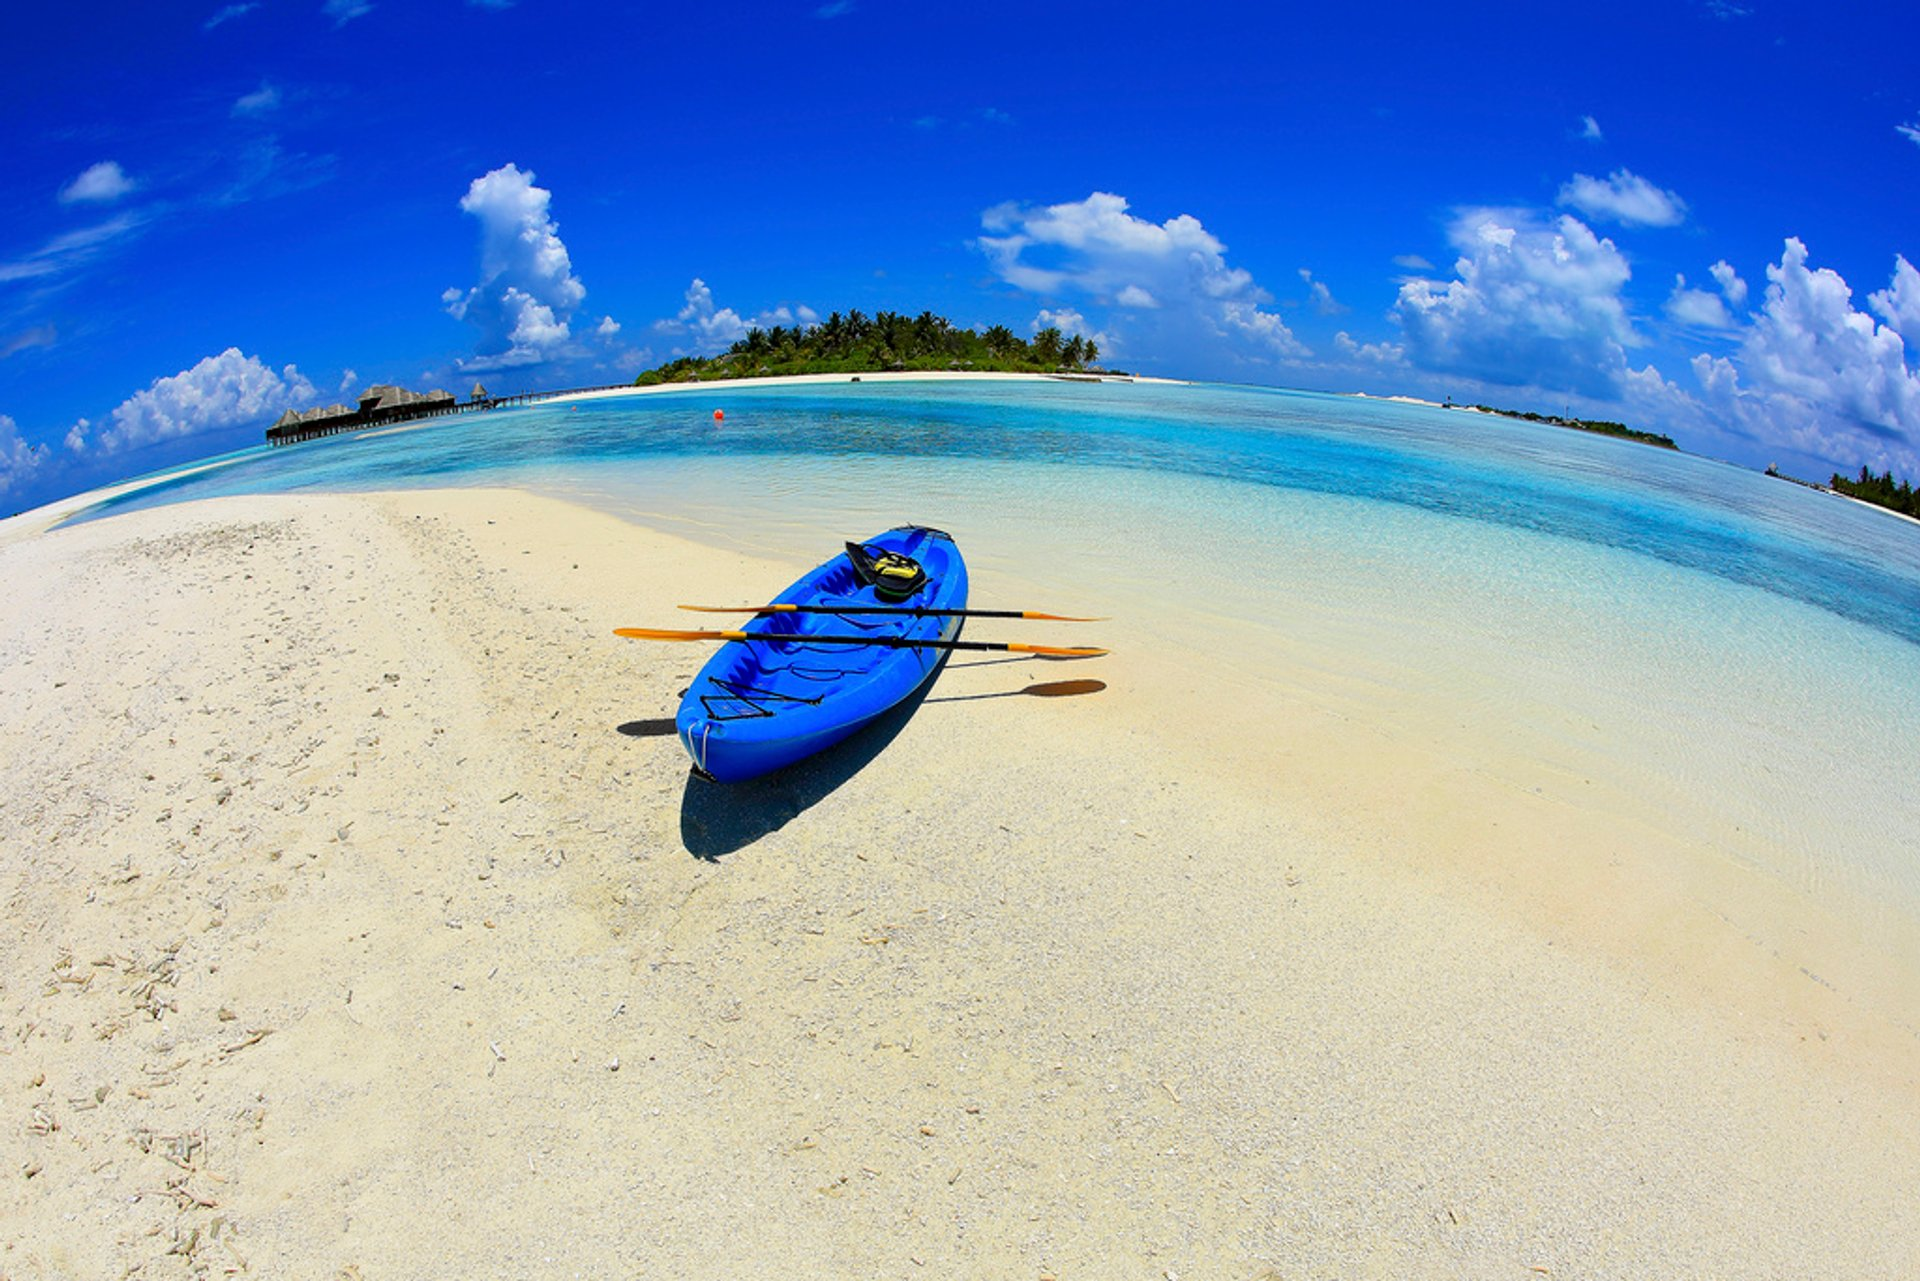 Kayaking  in Maldives - Best Season 2020